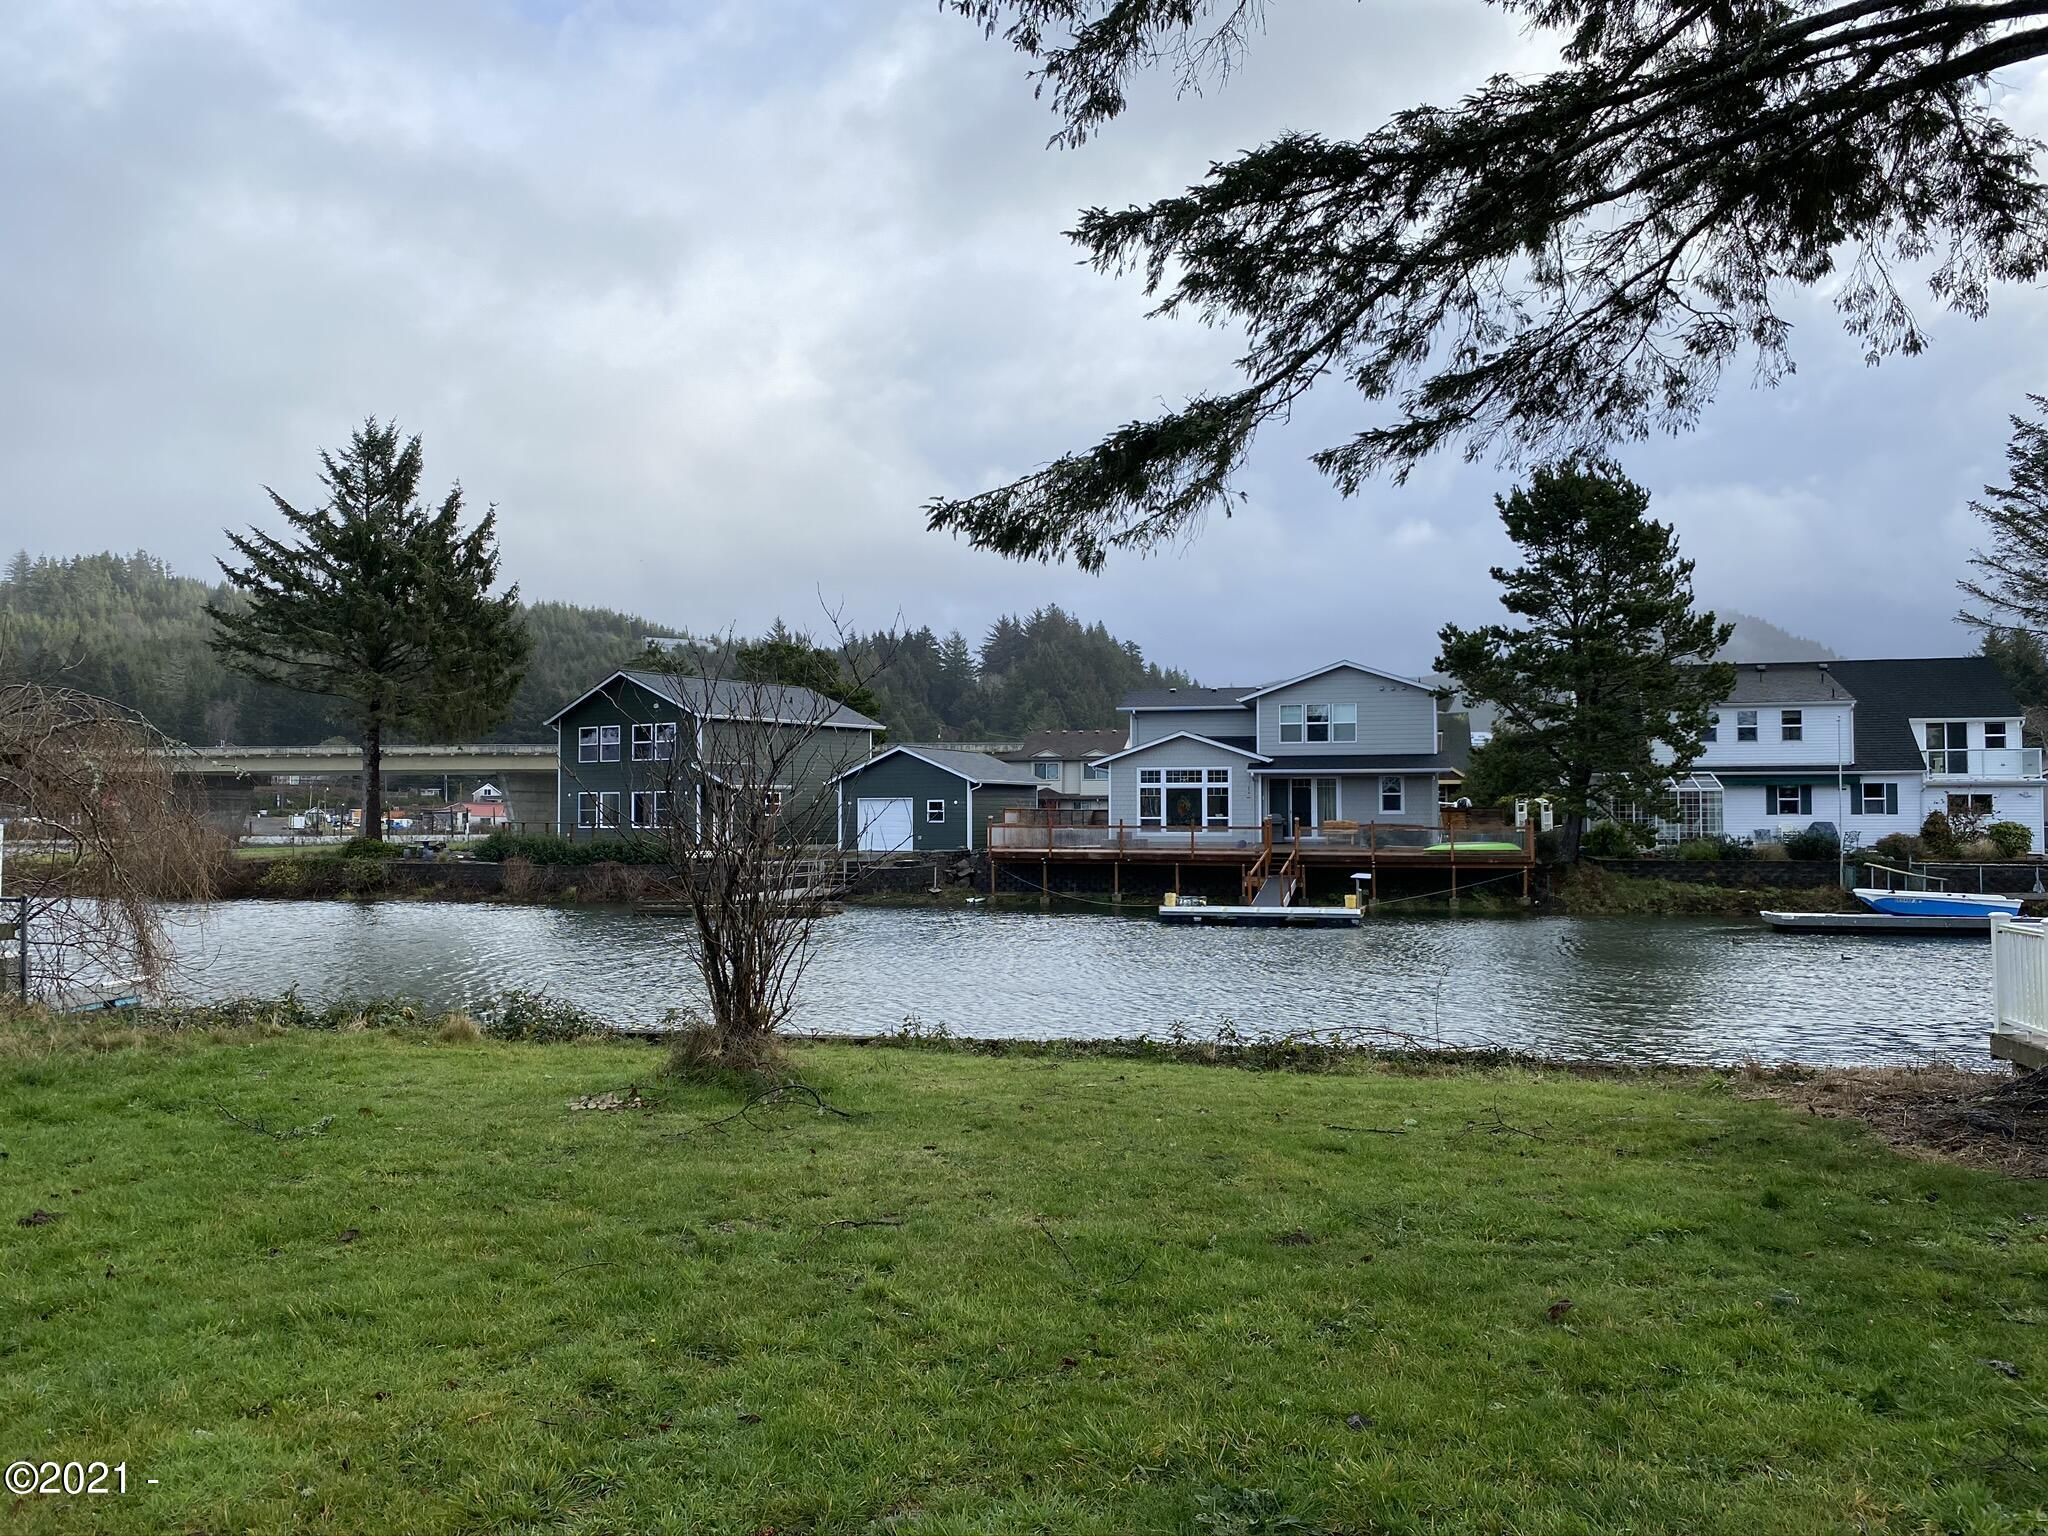 9100 BLK Keys Pl, Lincoln City, OR 97367 - Water view